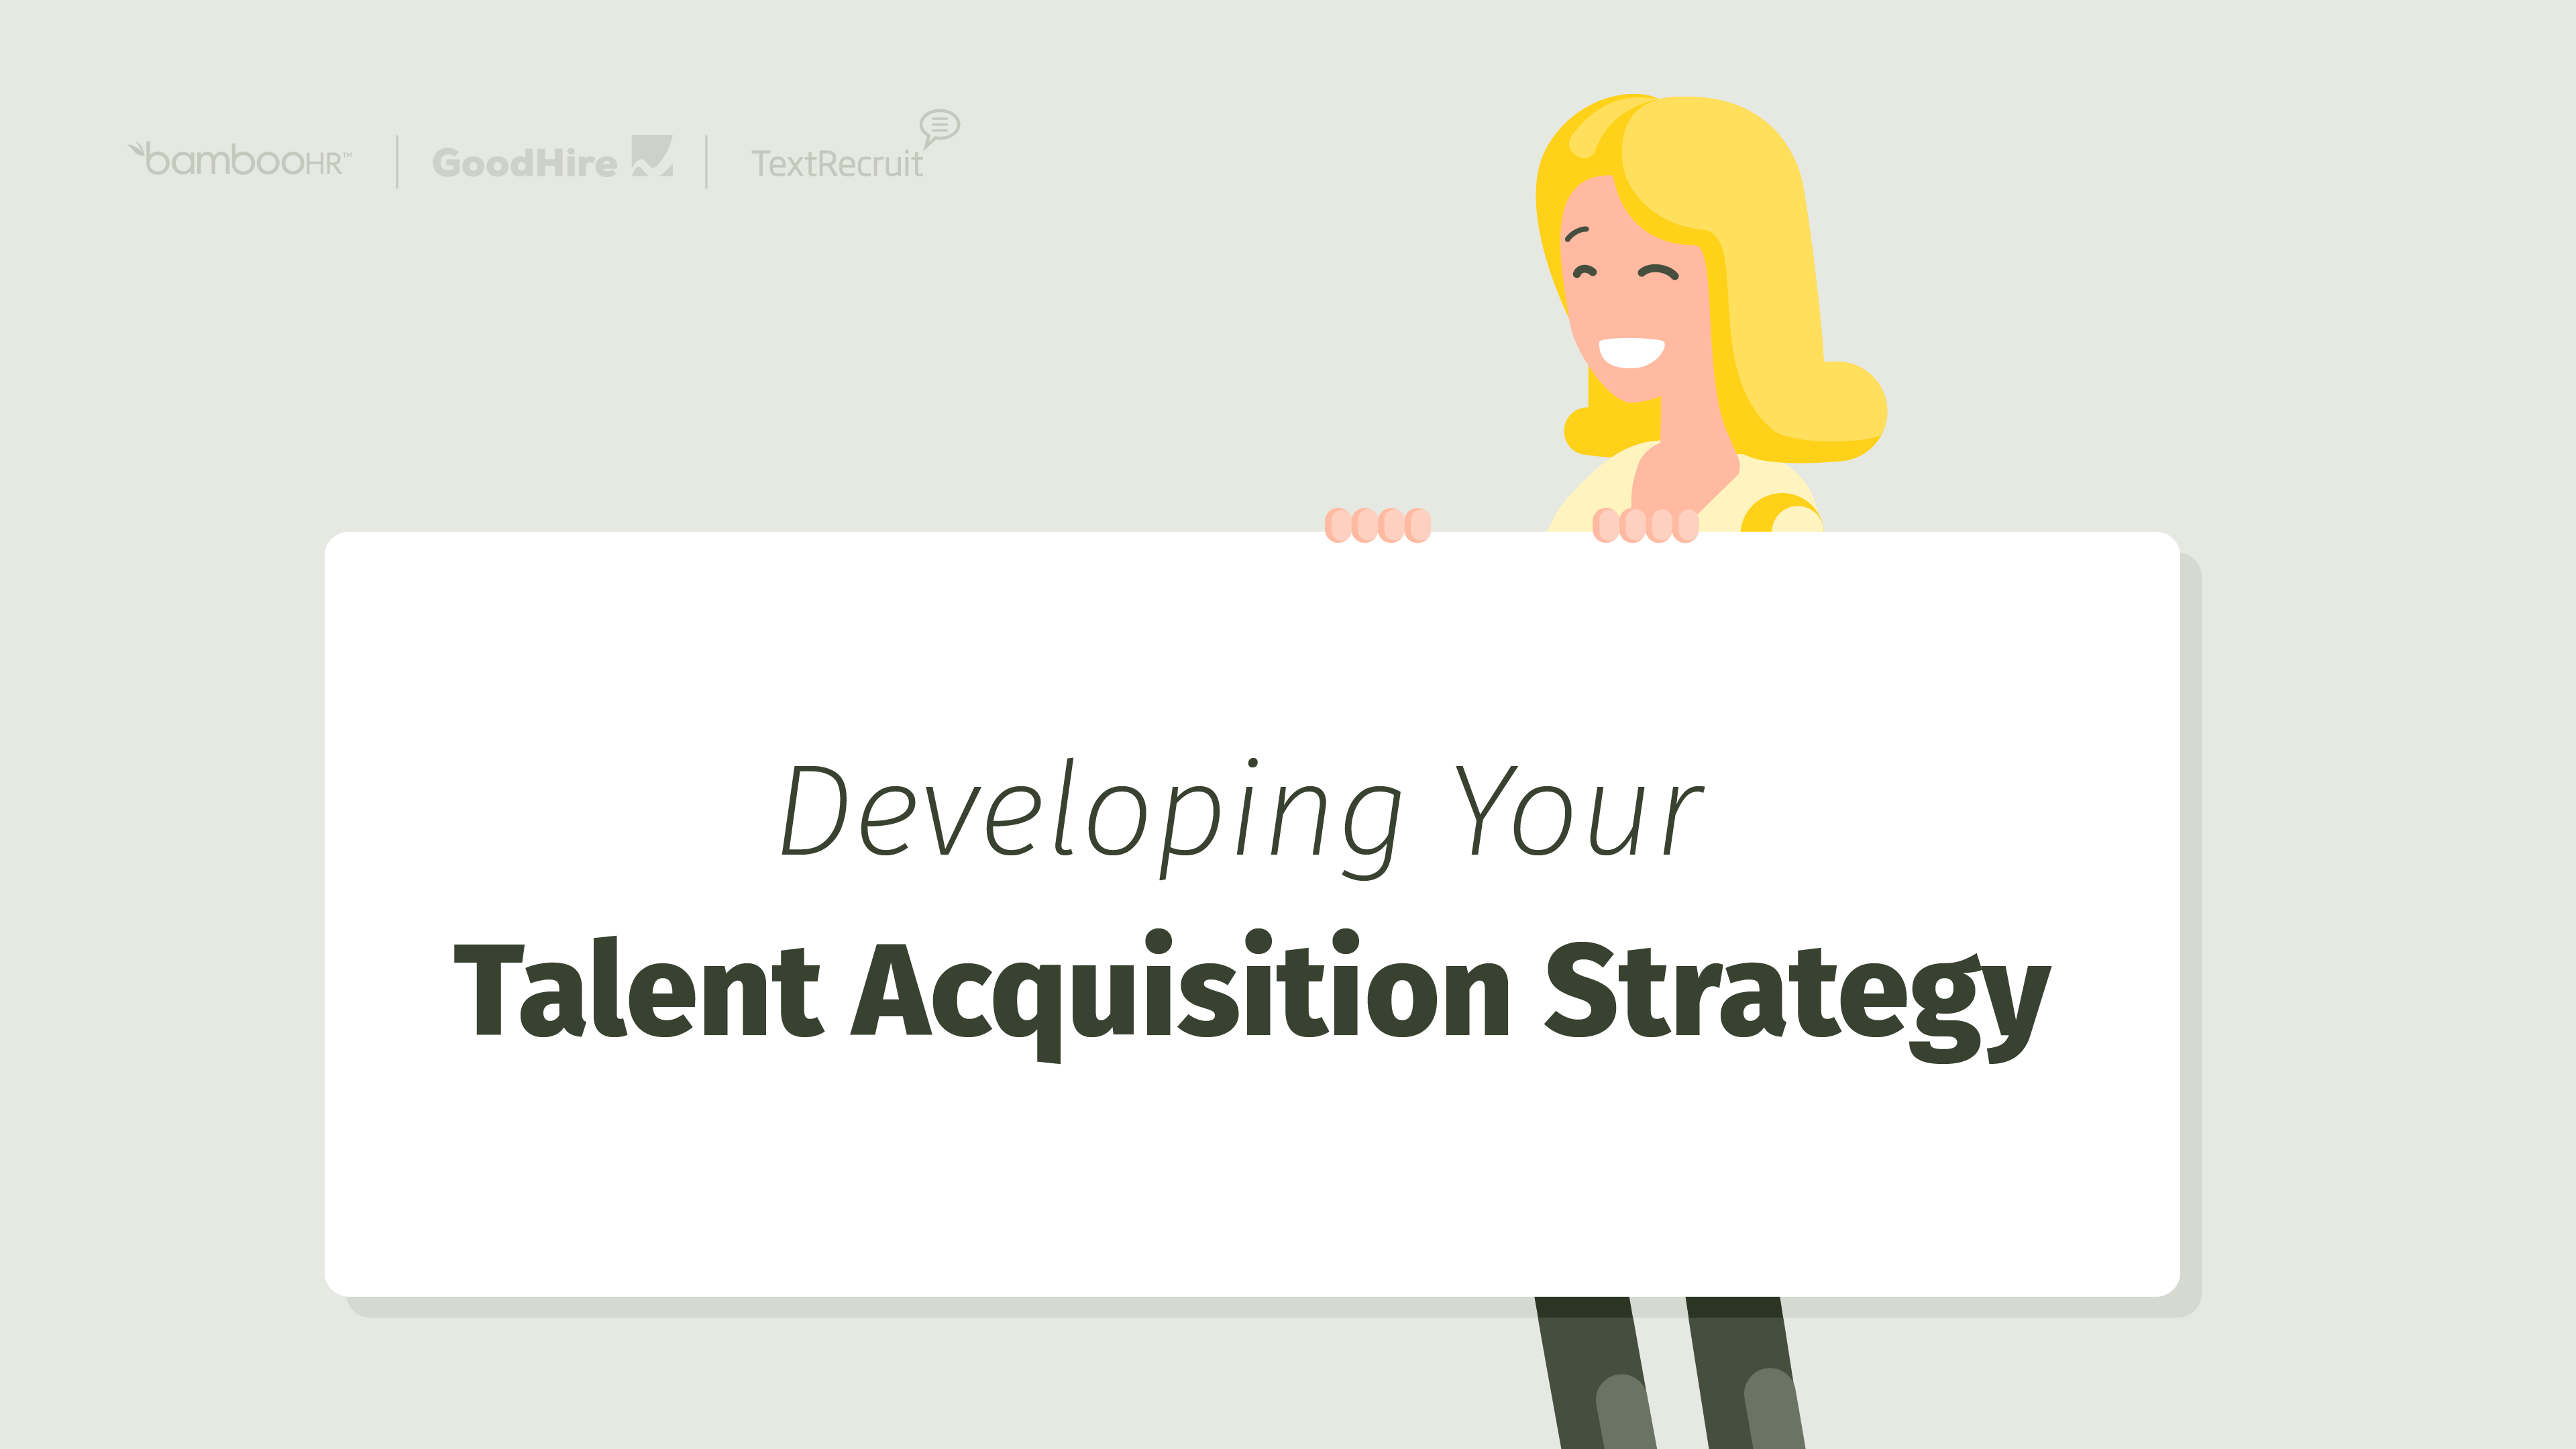 Developing Your Talent Acquisition Strategy